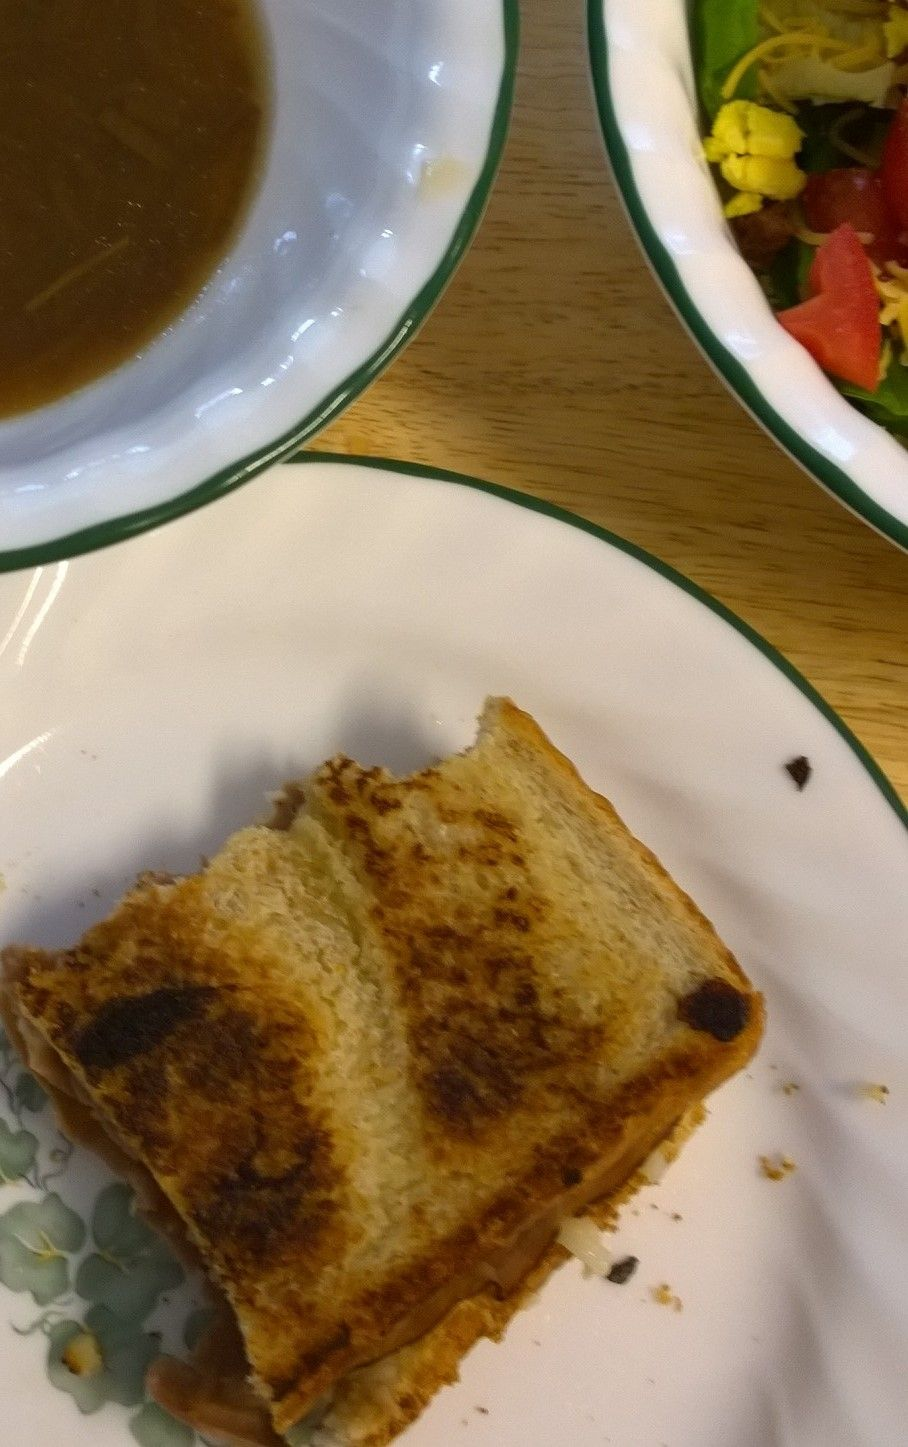 Grilled roast beef and mozzarella cheese sandwich.  Dipping sauce; French onion soup or au jus.